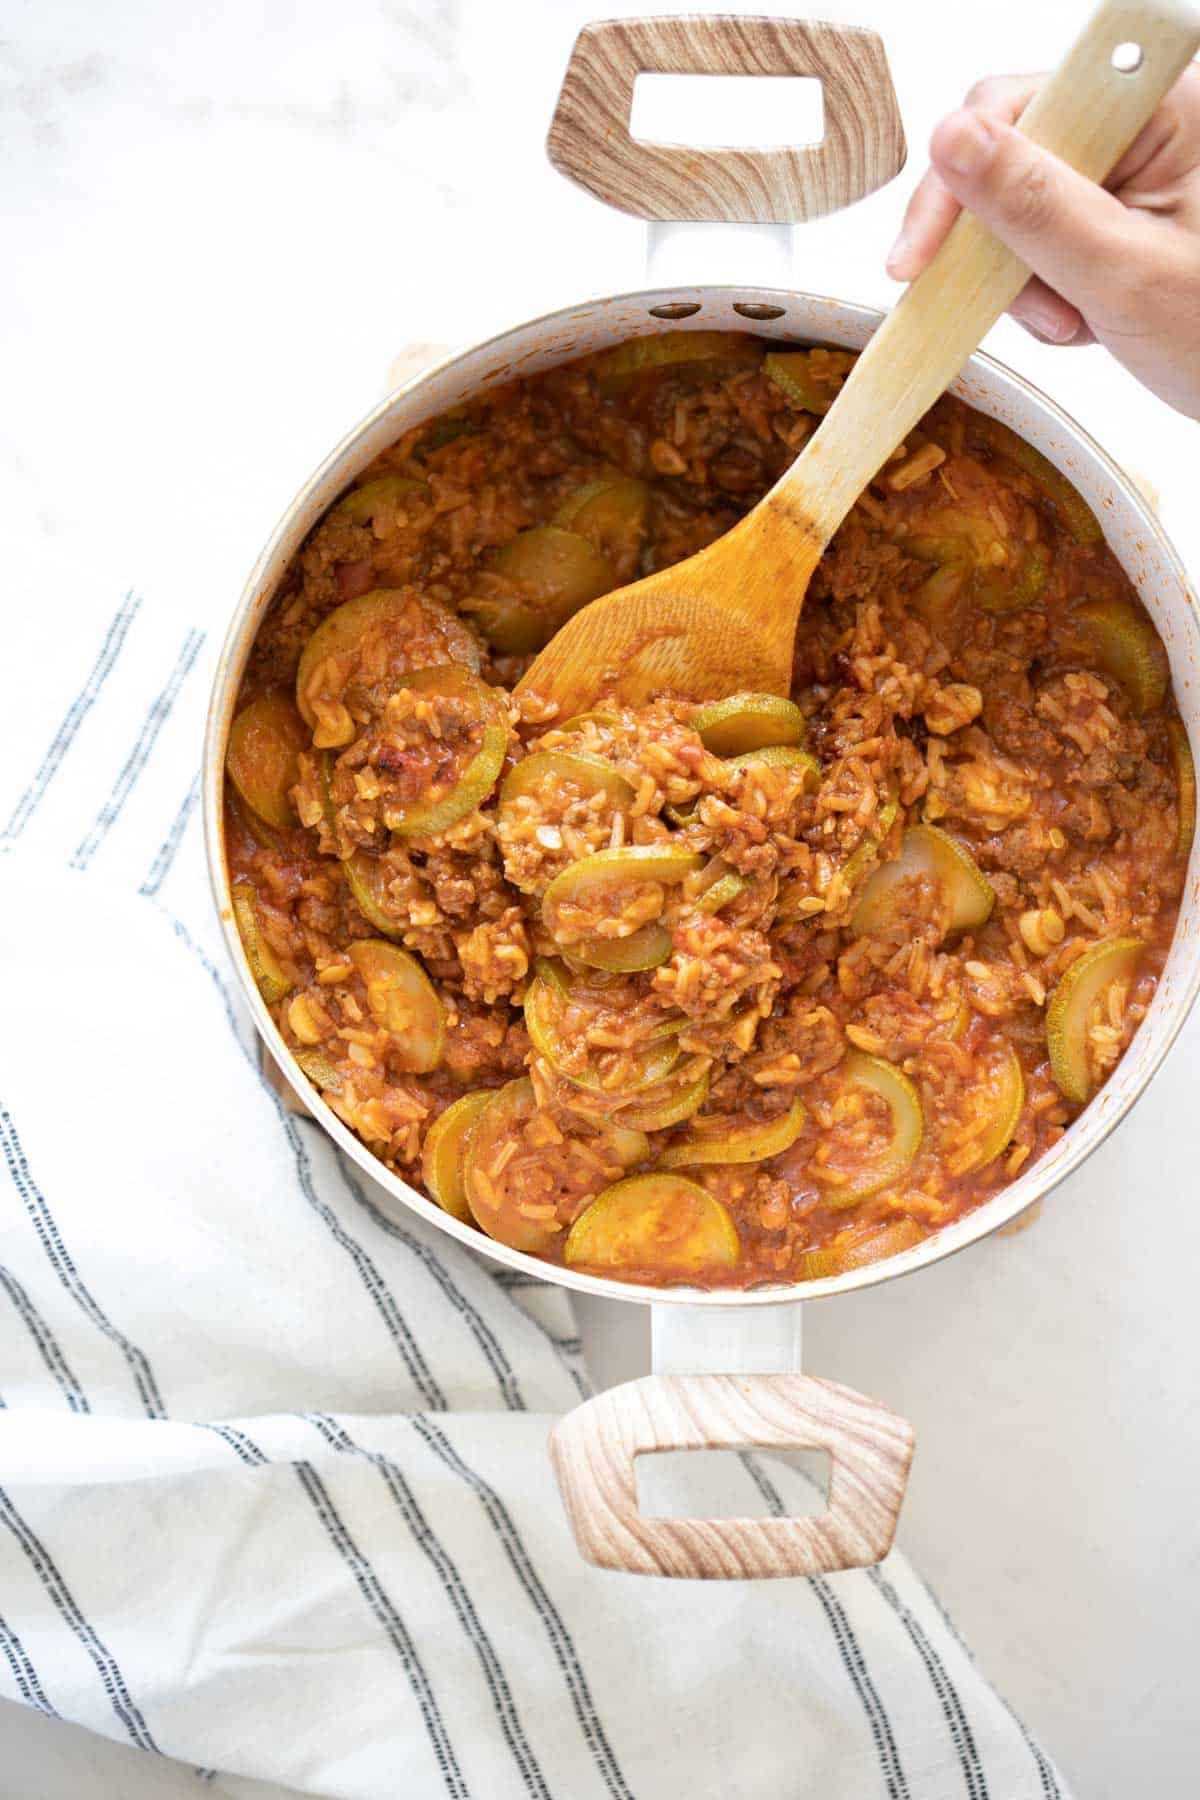 squash and rice casserole with minced meat in a pot